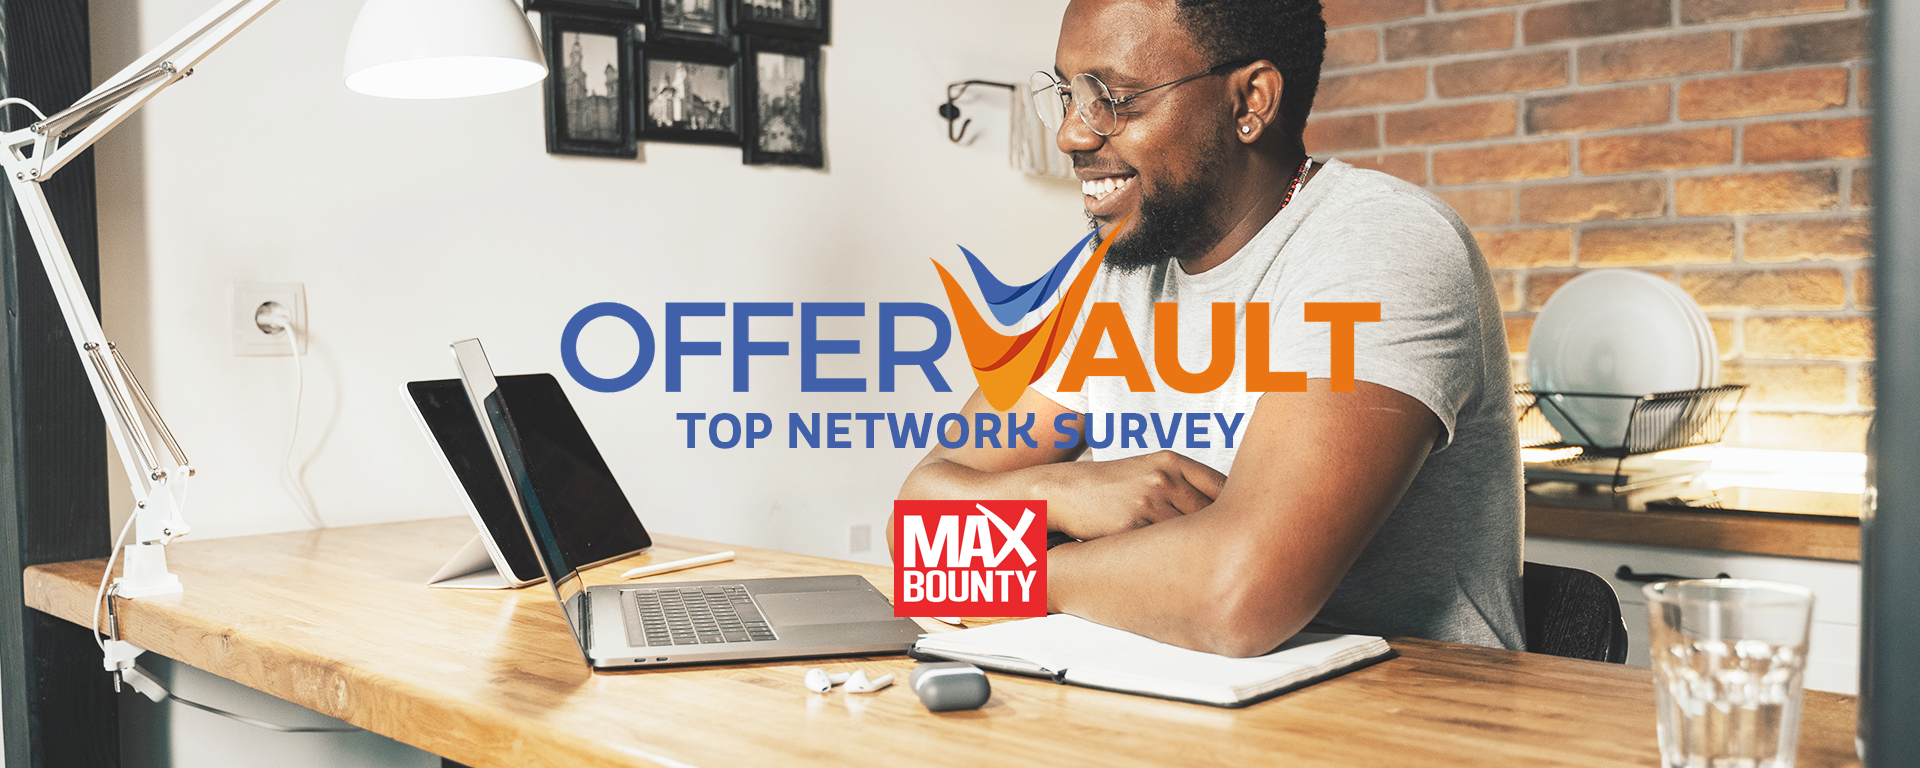 OfferVault Launches First Top CPA Network Survey: Vote MaxBounty Now